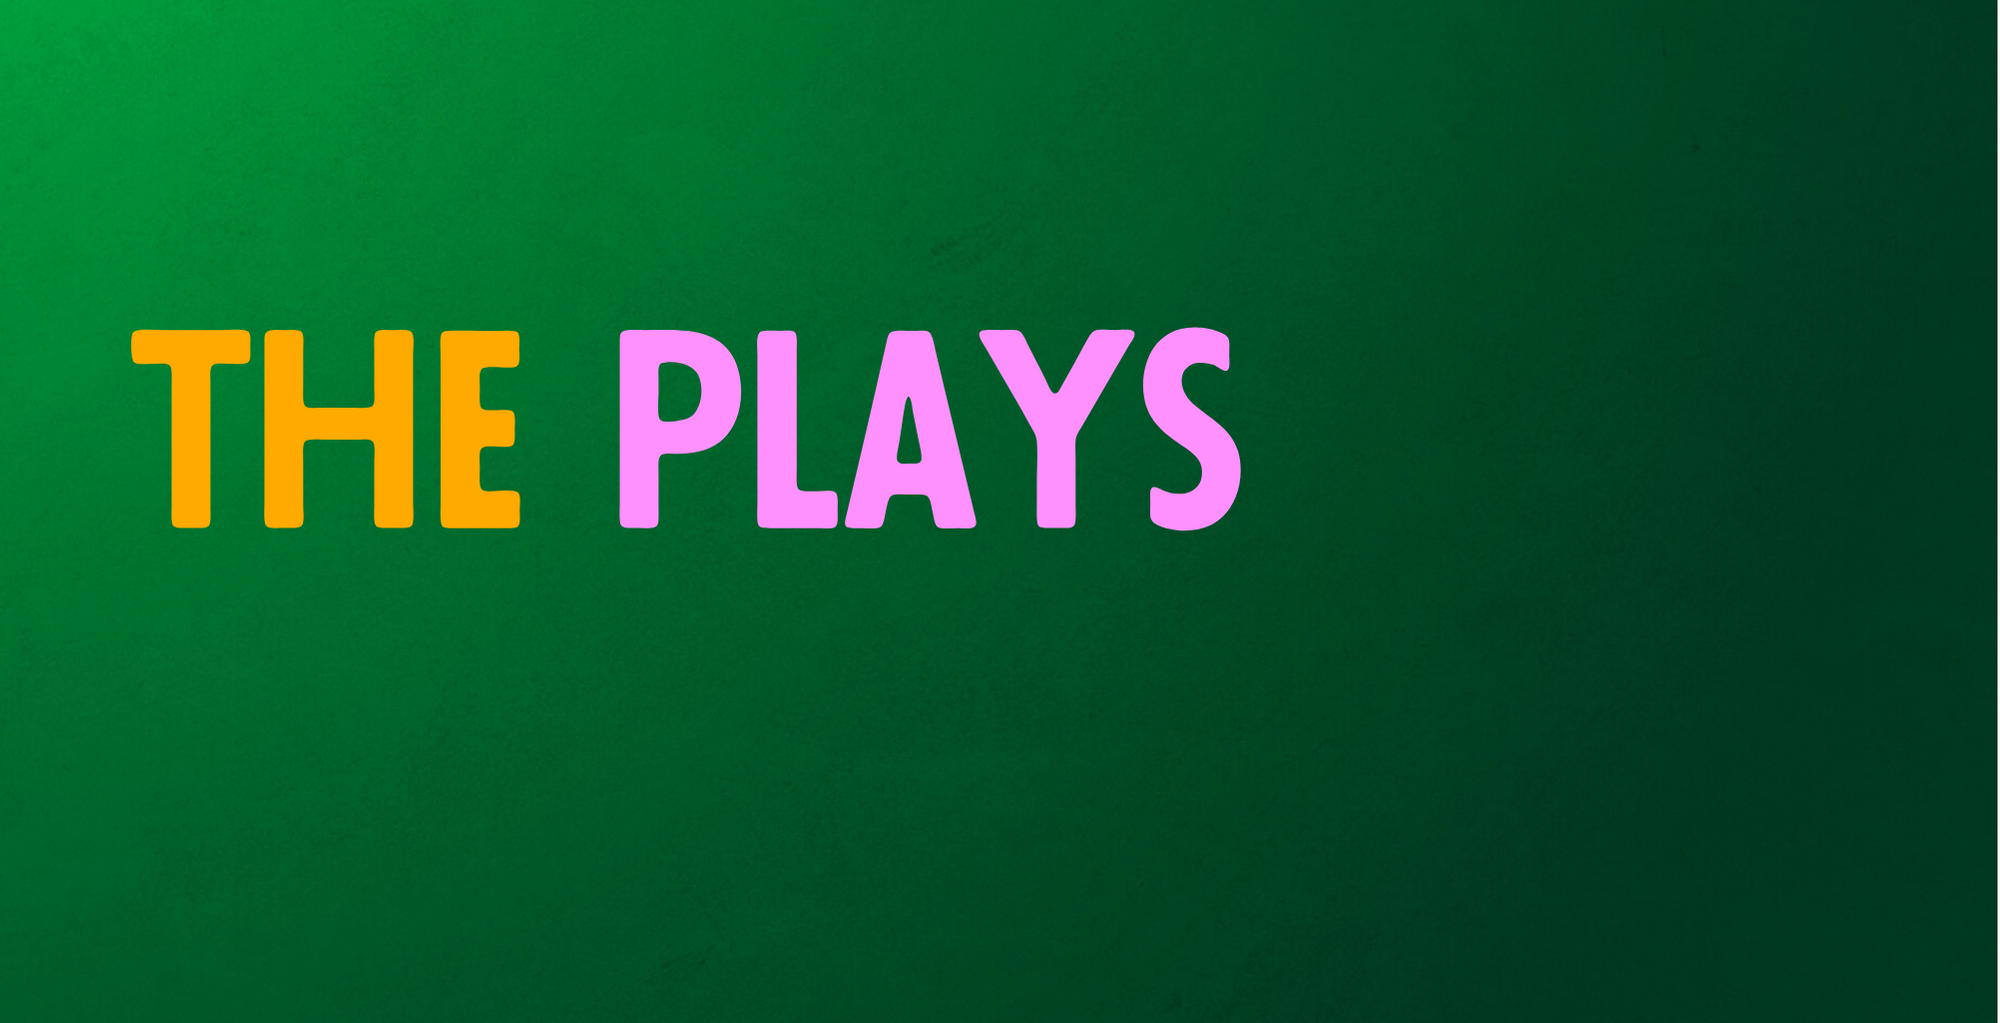 EXPLORE ALL 19 PLAYS